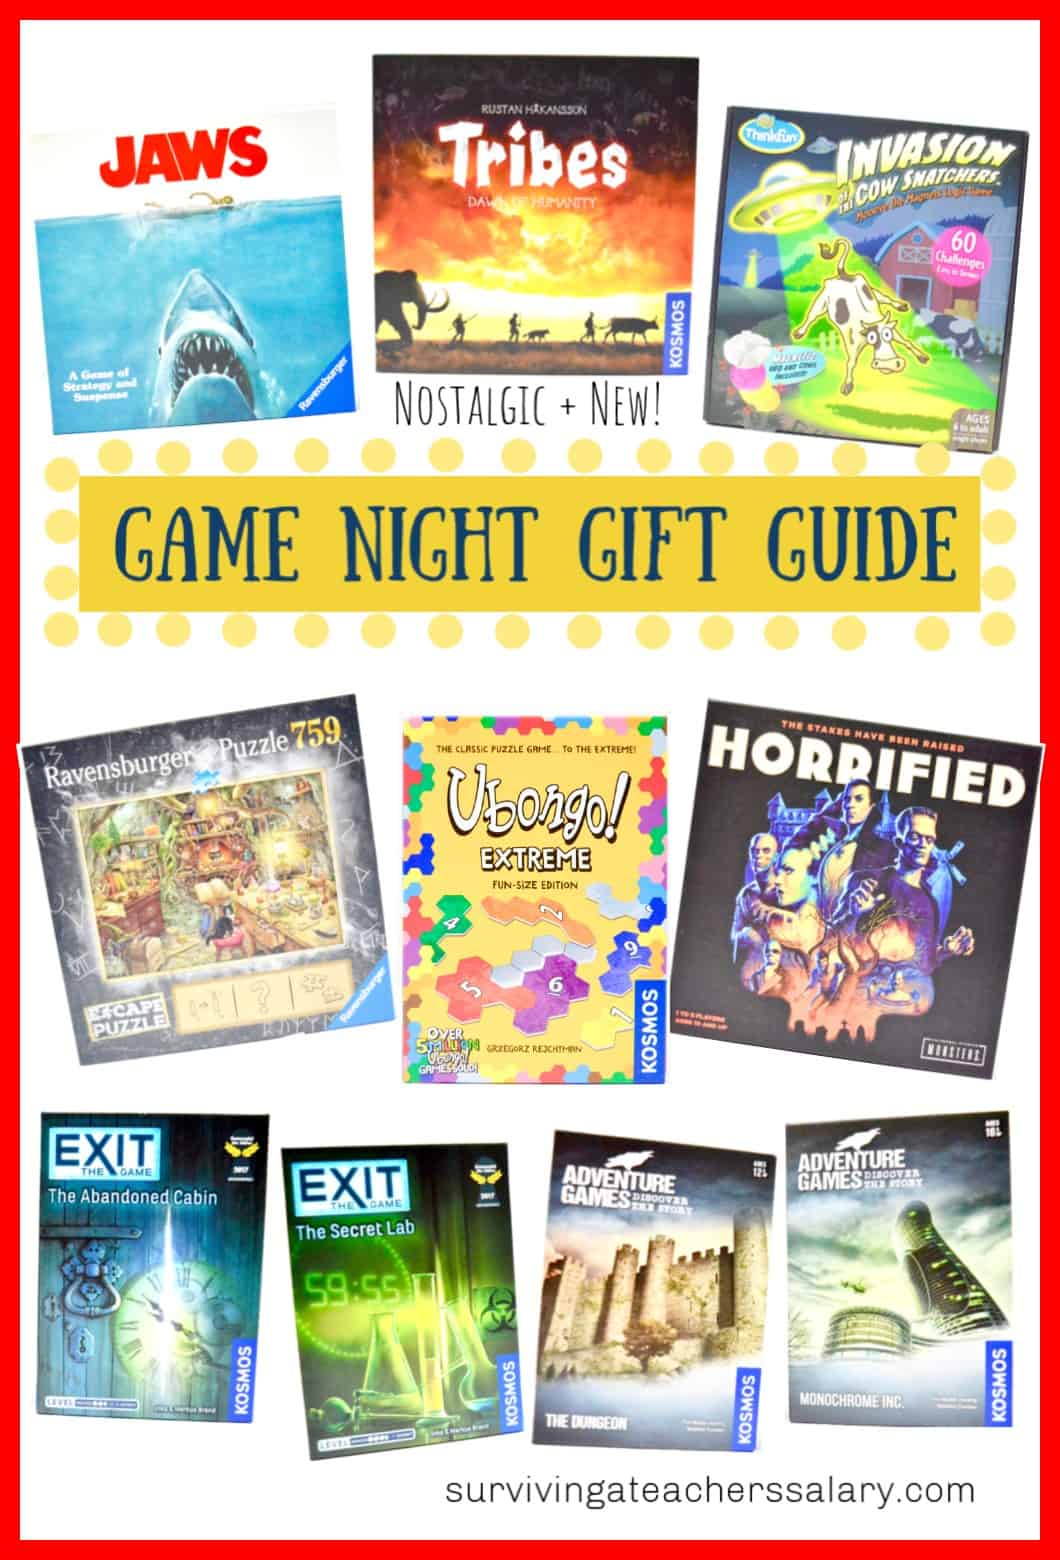 Game Night Games & Unique Puzzles Gift Guide